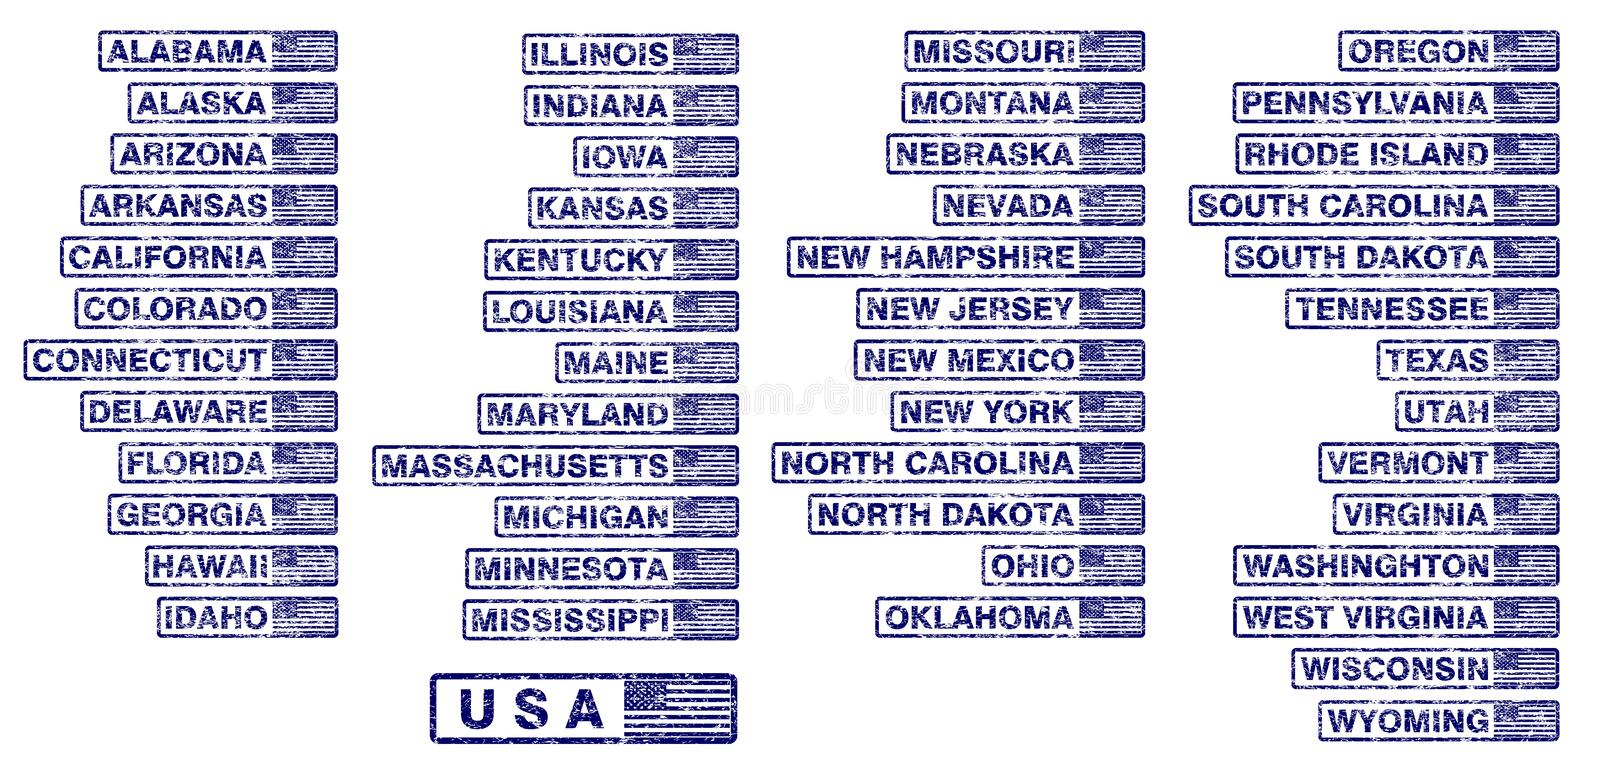 USA states rubber stamps - cdr format vector illustration